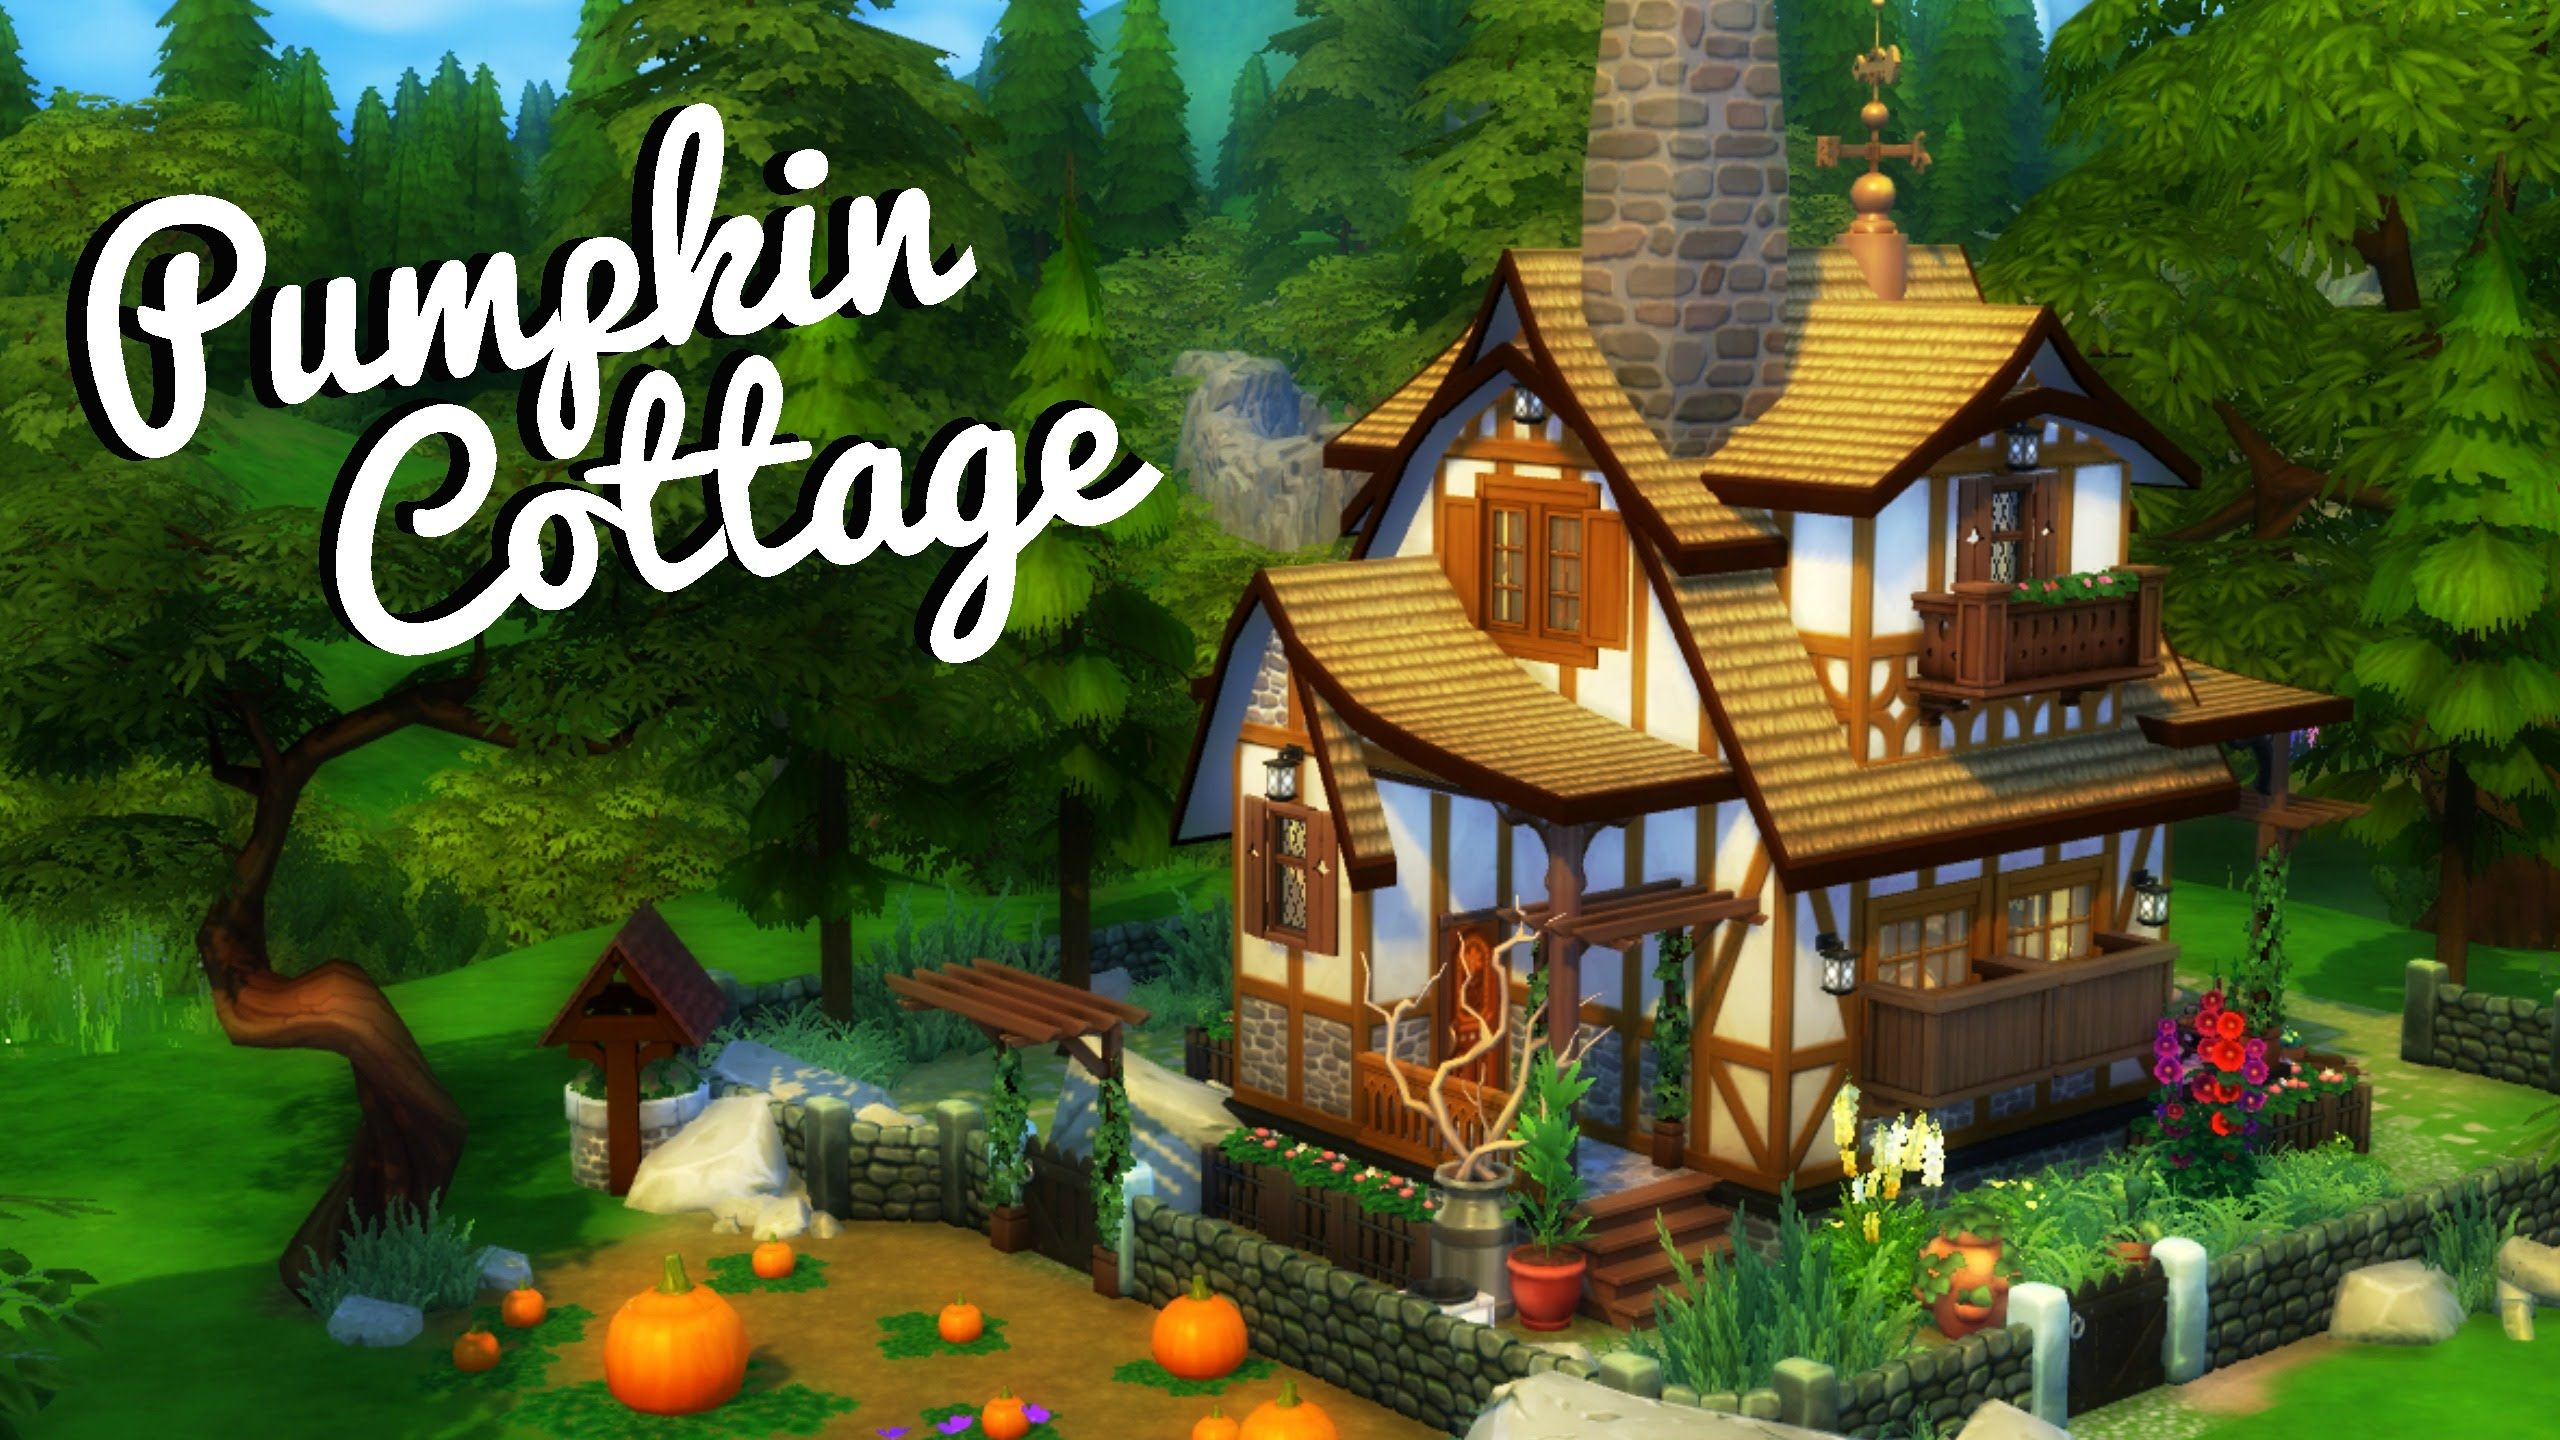 PUMPKIN COTTAGE Sims 4 House Build Sims 4 houses, Sims